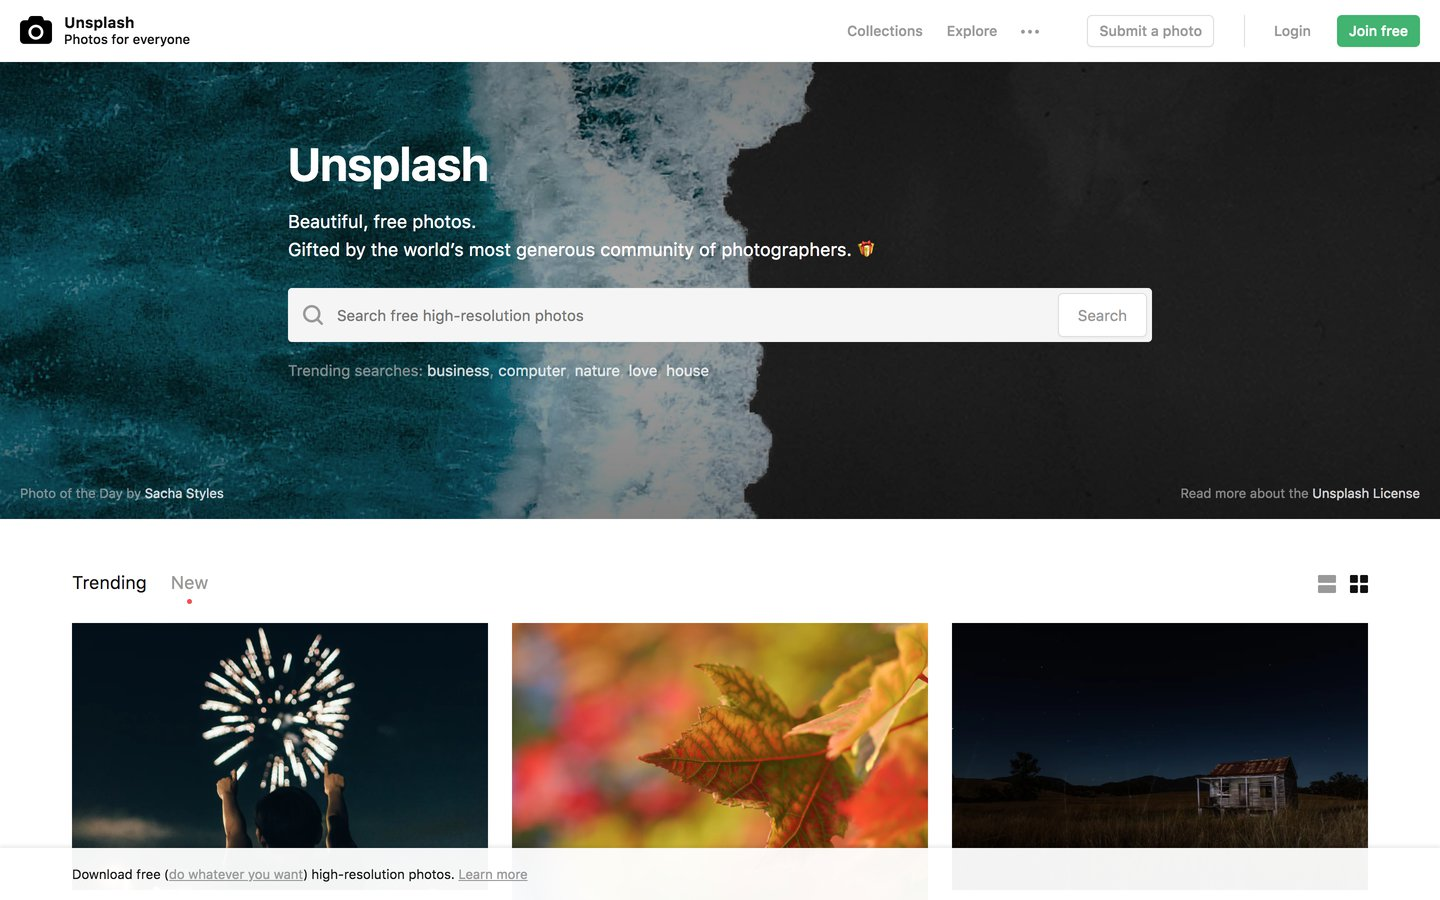 Unsplash | Photos for Everyone